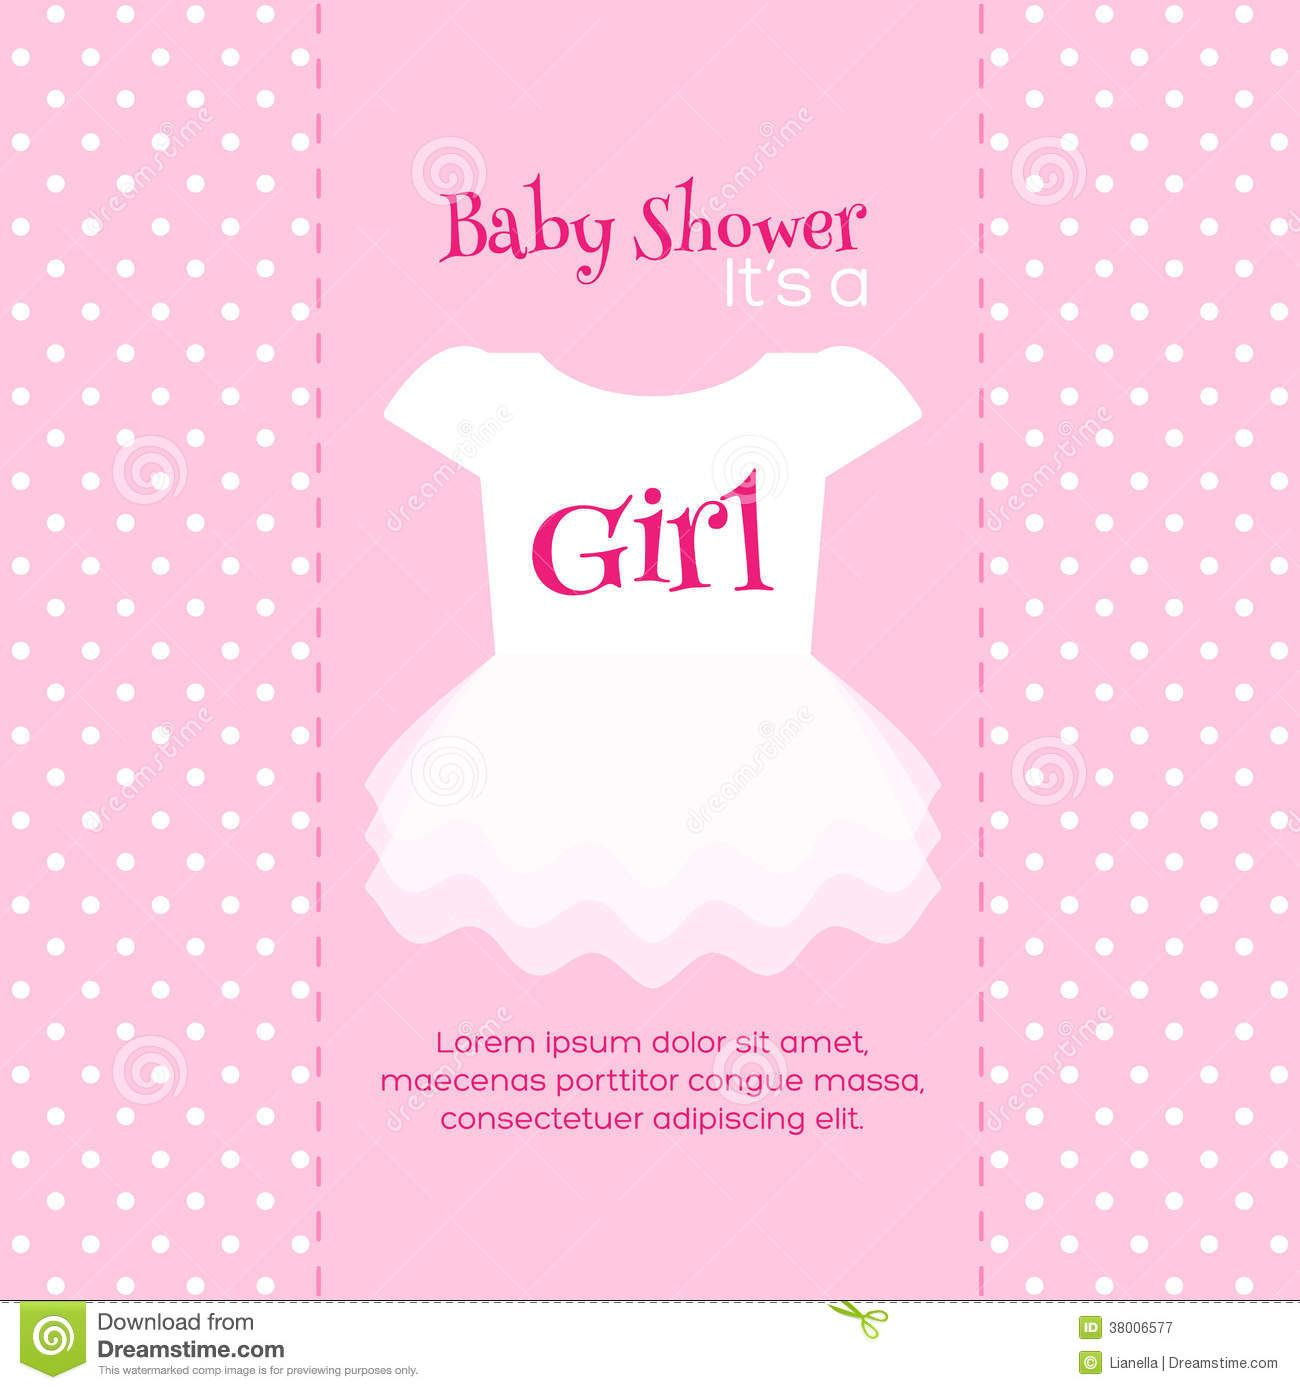 Baby Shower Invites Templates